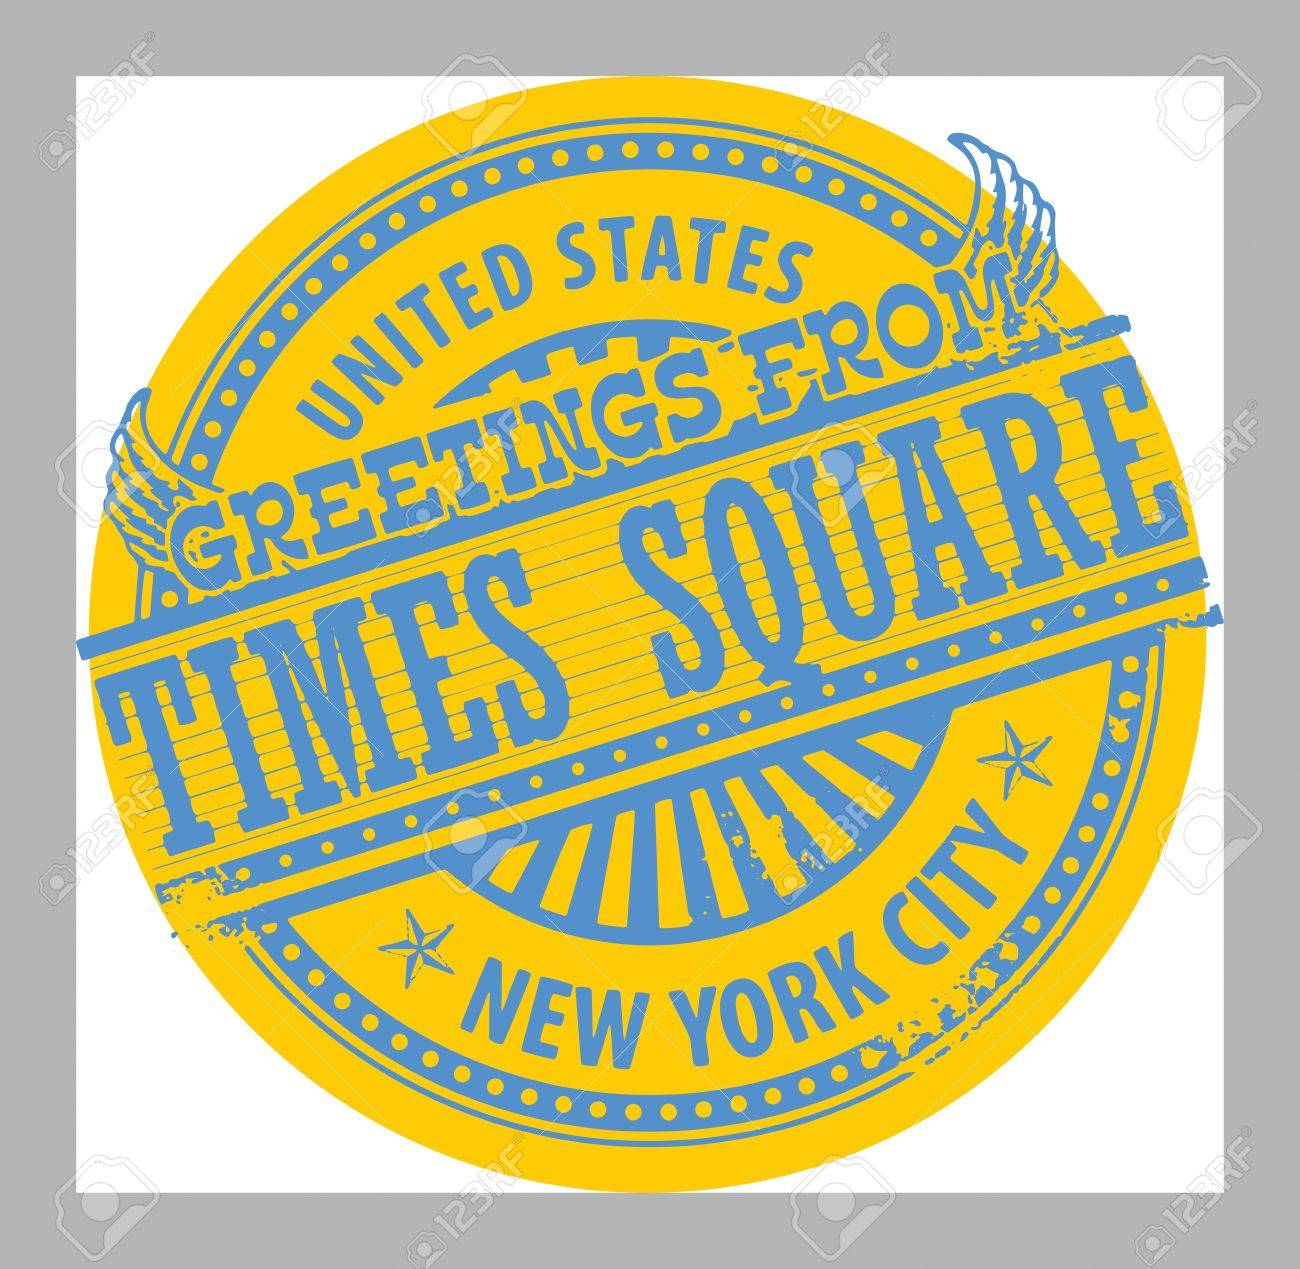 Grunge Rubber Stamp With Text Greetings From Times Square, New ...